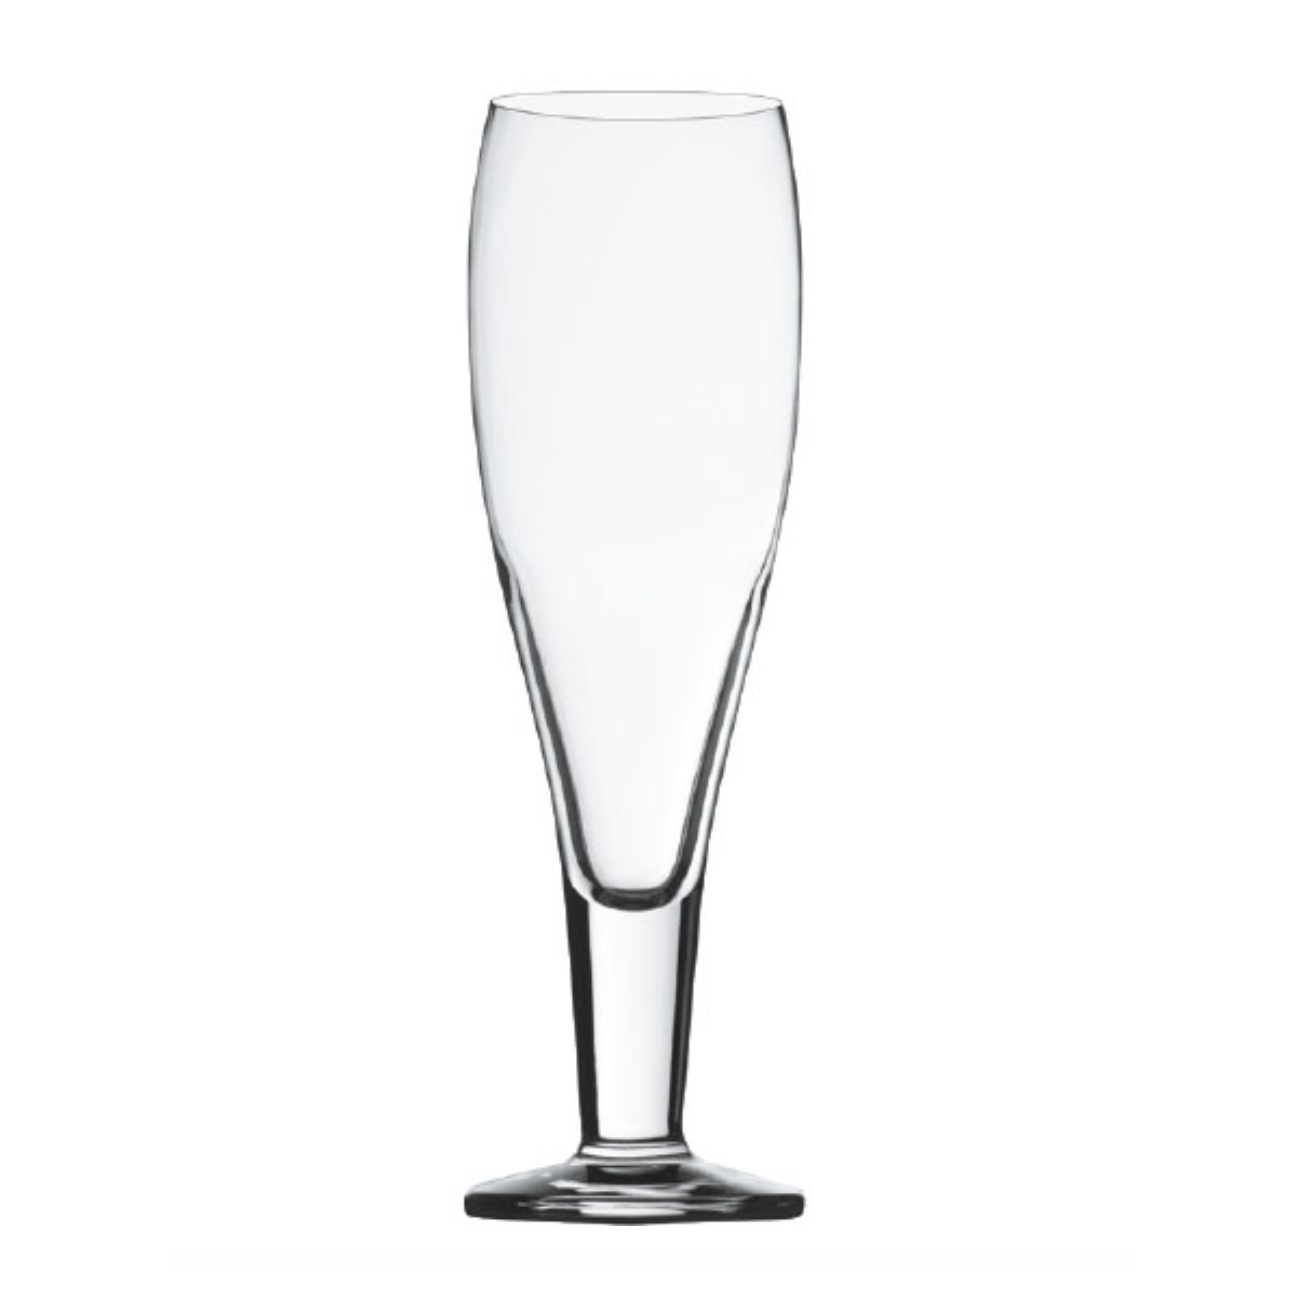 Stolzle Laustiz Bierpokale German Made Crystal Milano Beer Glass, Set of 6